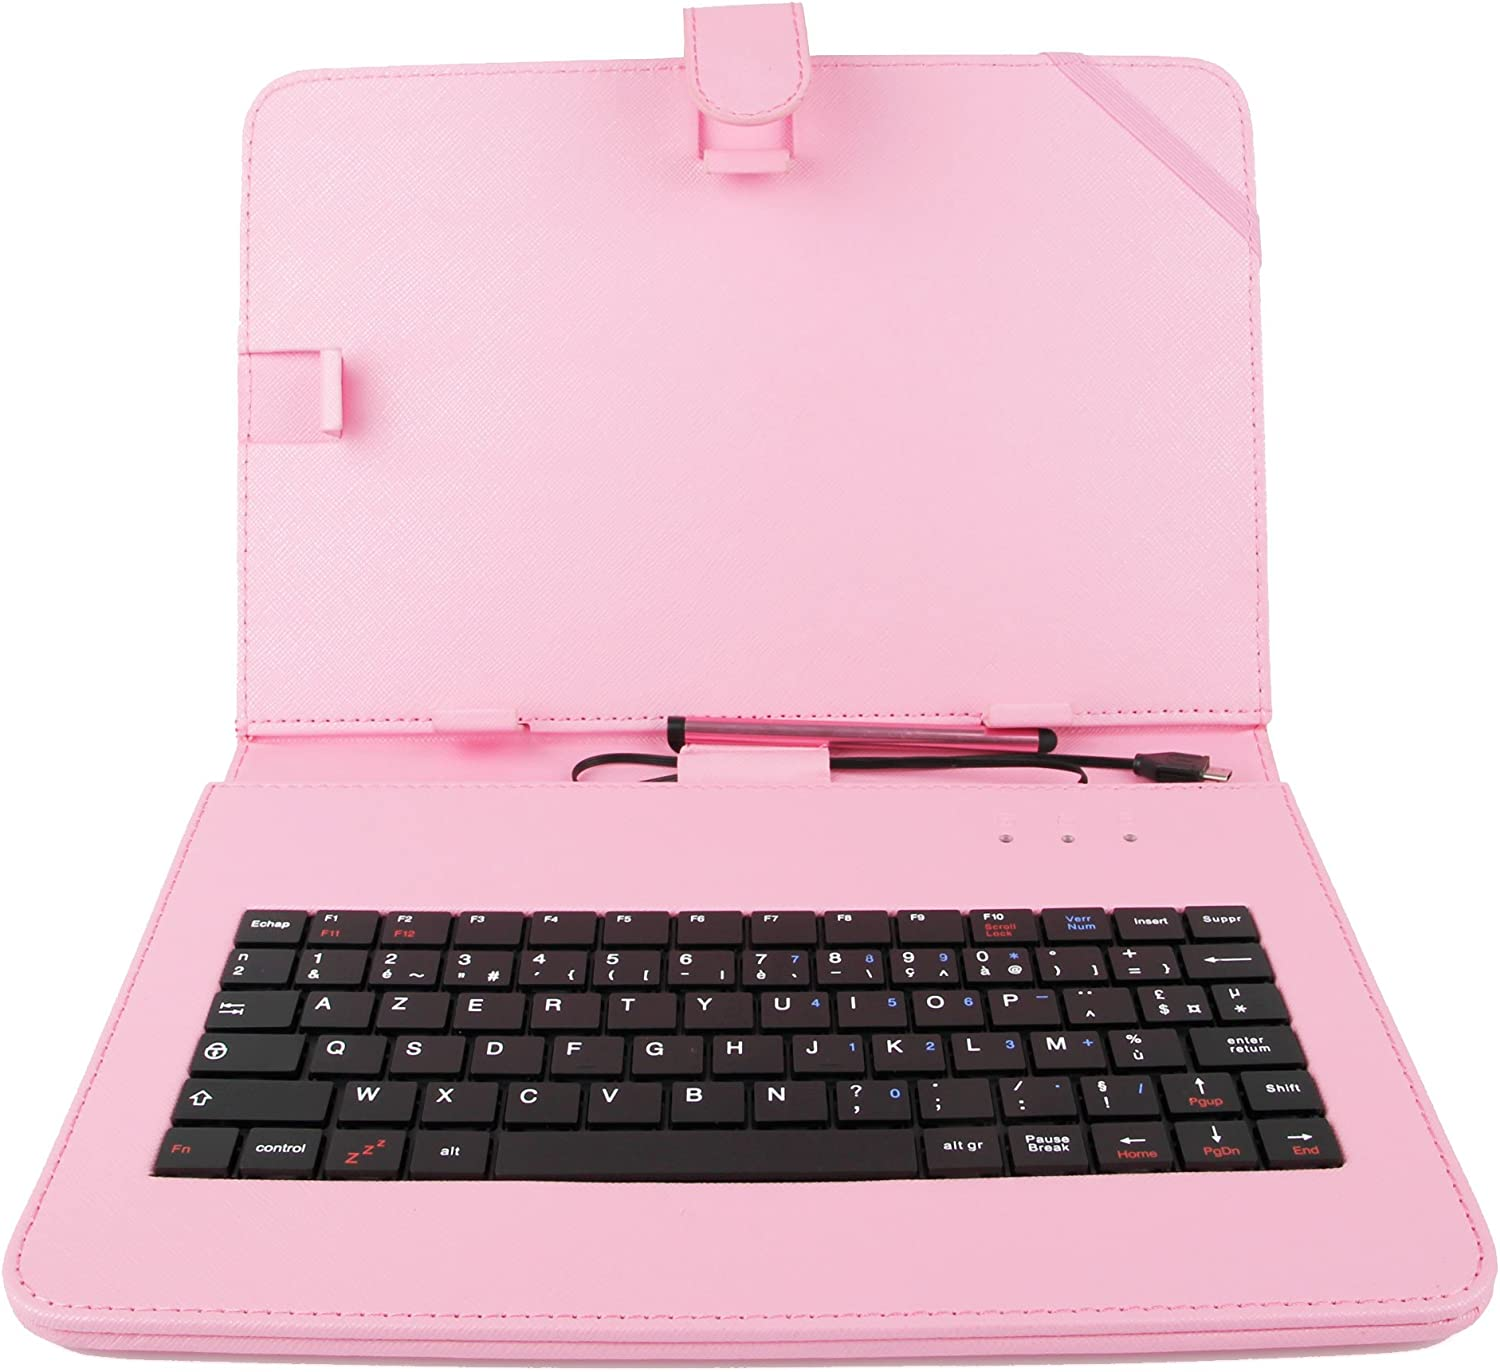 DURAGADGET Pink Faux Leather French Keyboard Case w/Stand - Compatible with Acer Iconia Tab A3 | Aspire Iconia Tab A500 10.1 inch & Ionia A200 Tablets